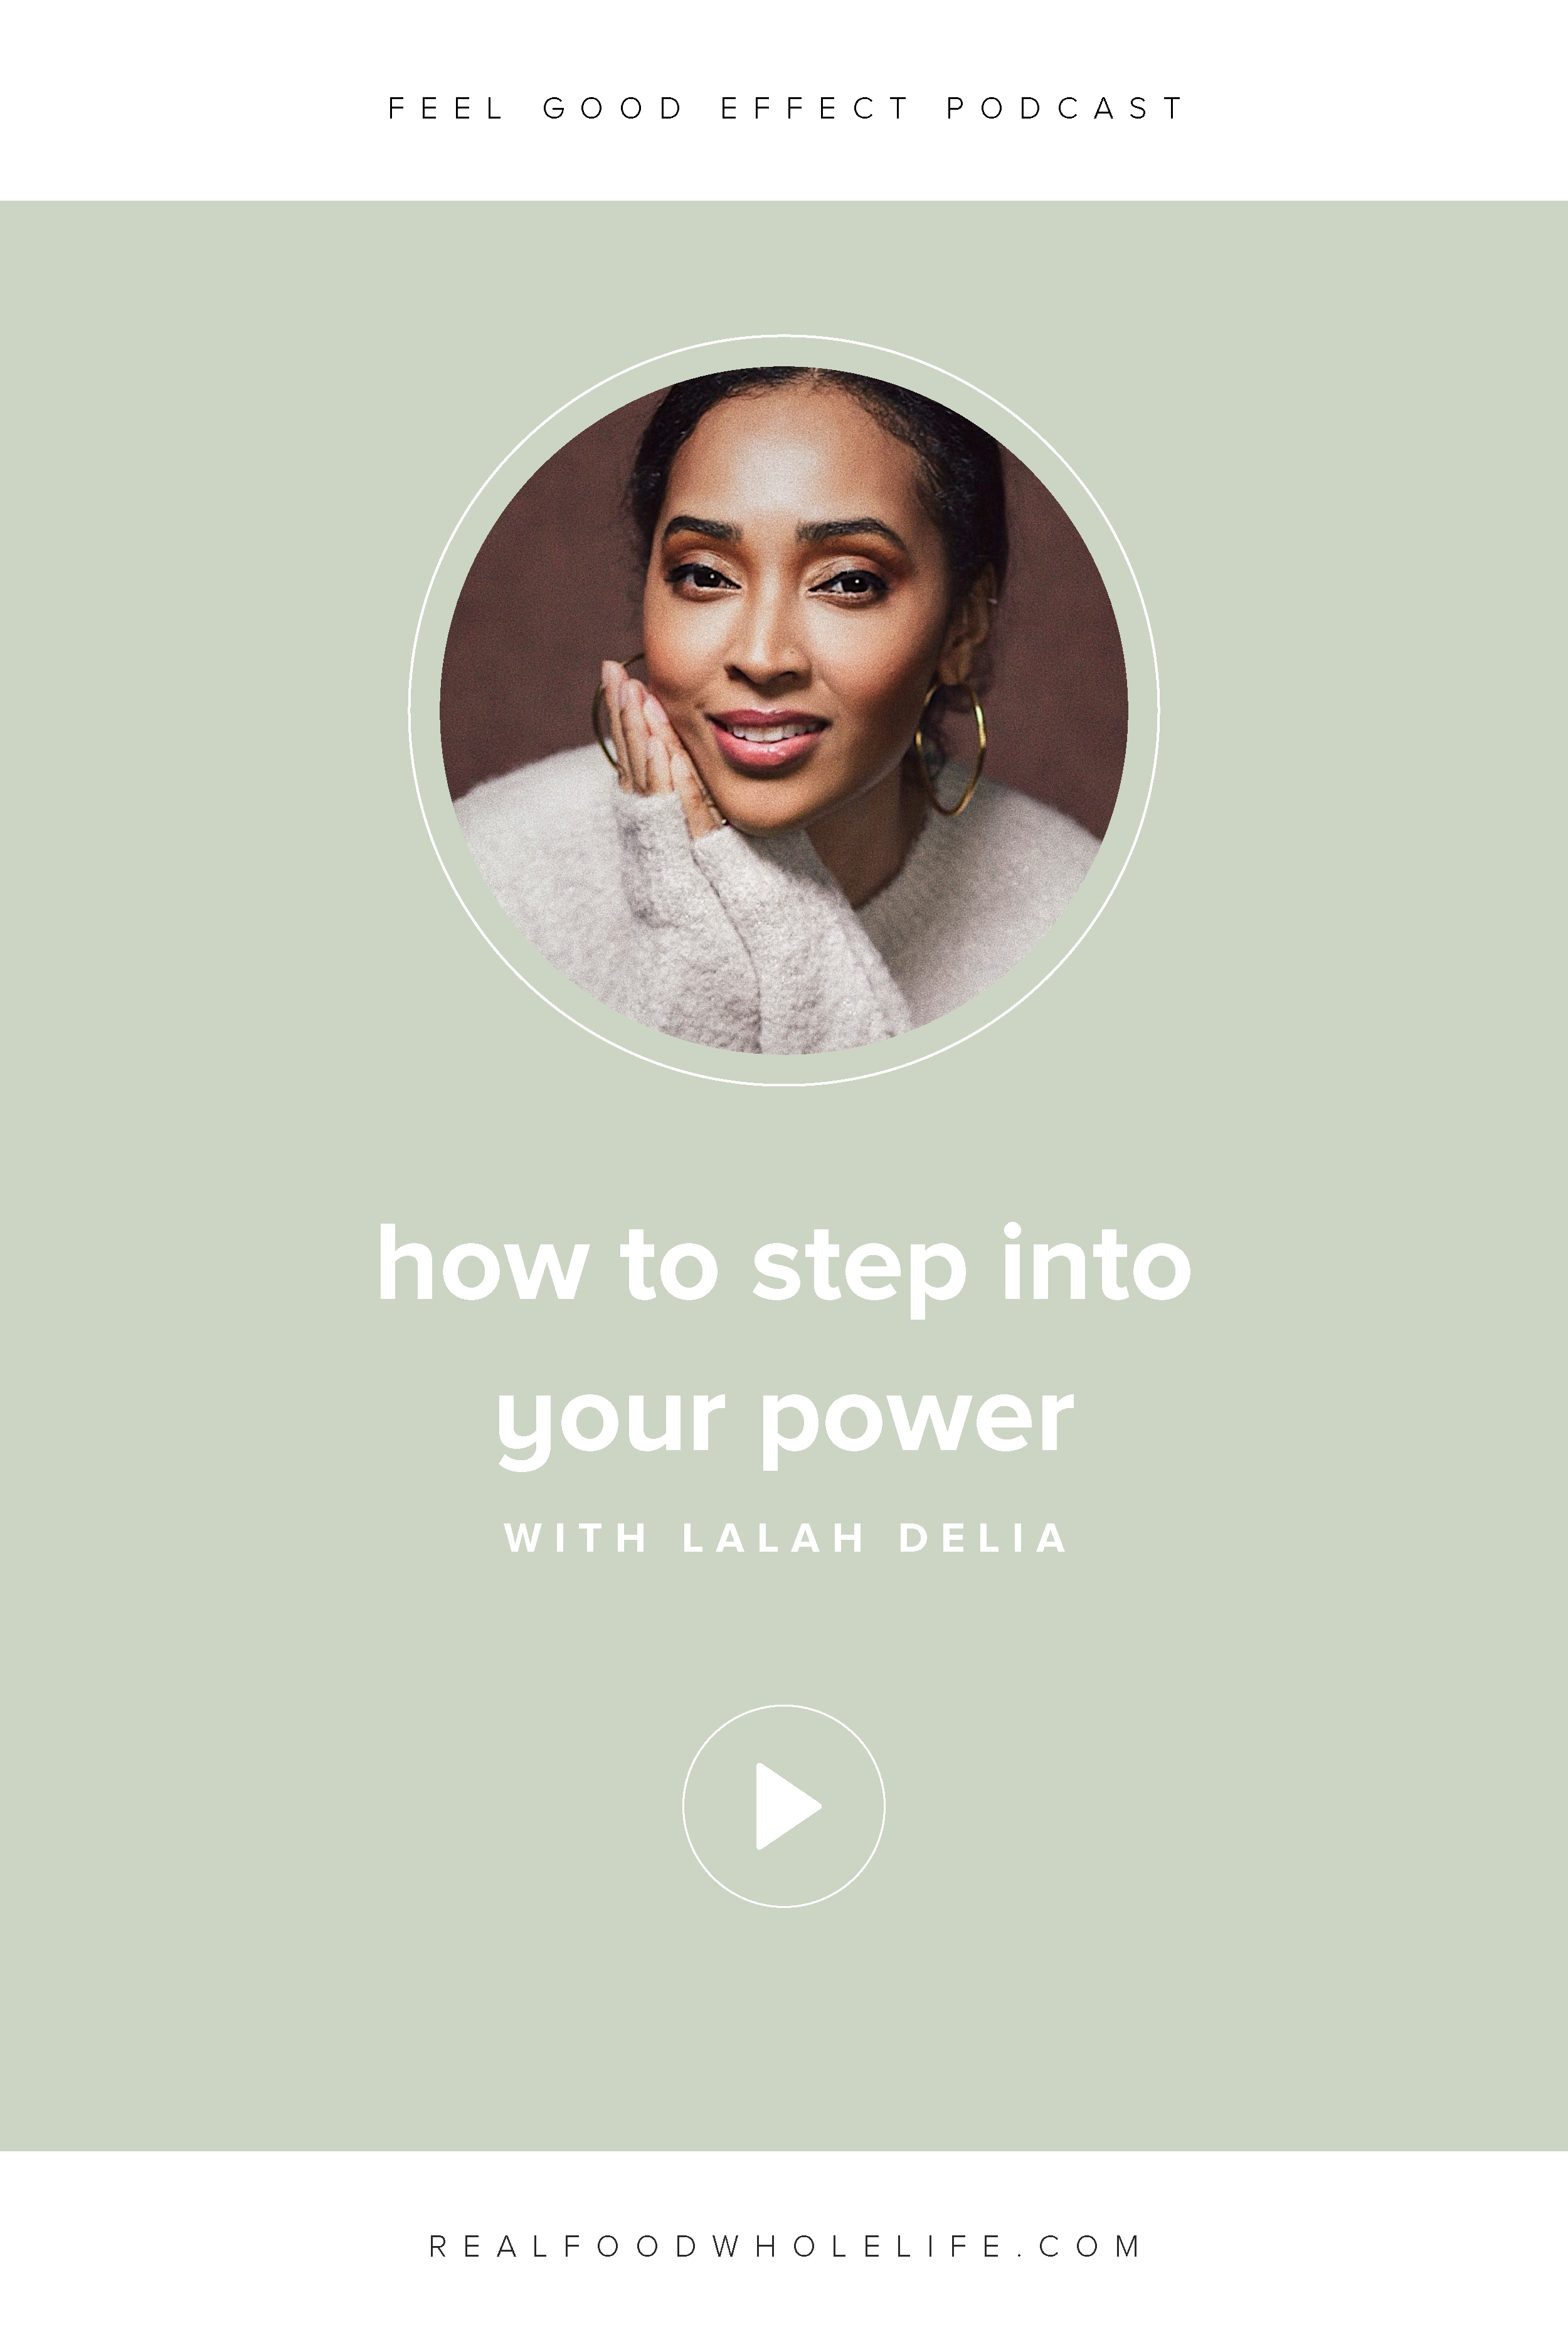 Lalah Delia talks all about how to empower yourself, how to step into your own power, and how to change the relationship with your body using daily, intentional choices. #realfoodwholelife #feelgoodeffect #wellnesspodcast #healthyliving #podcast #surrender #vibratehigherdaily #empower #selflove